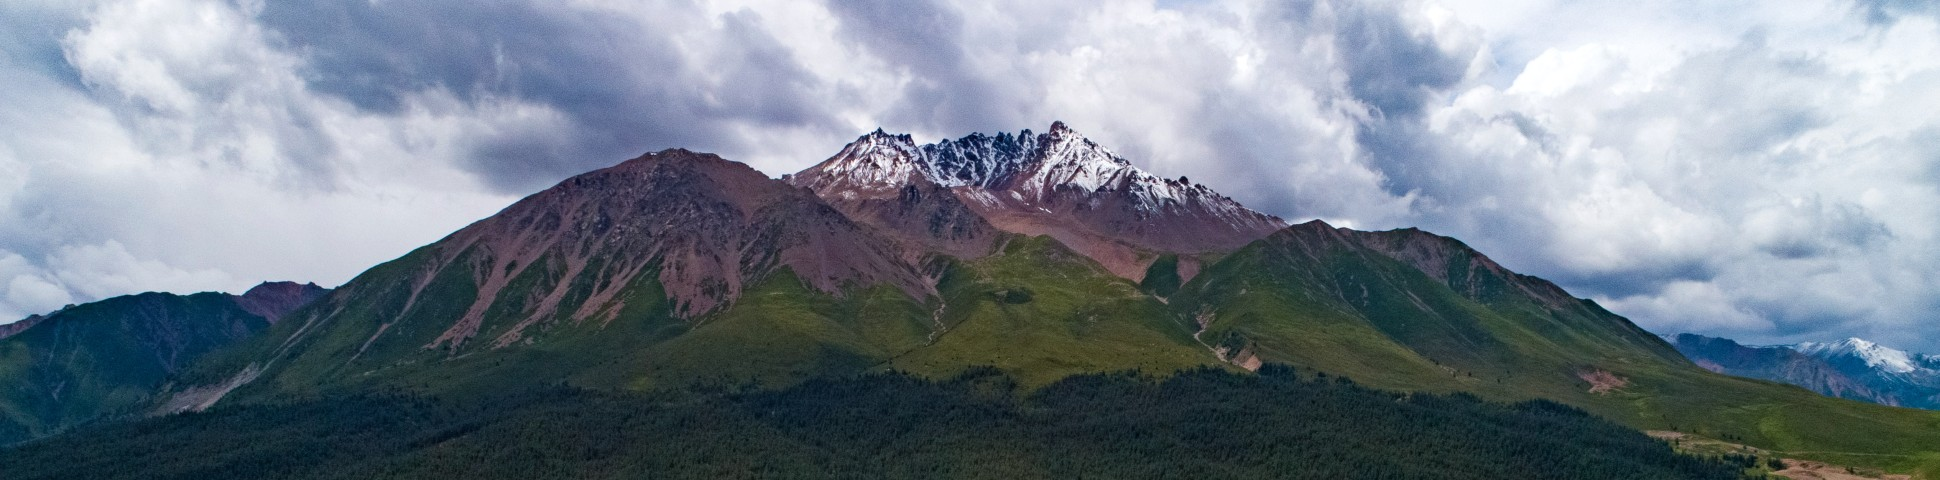 Panoramic view from Qinghai